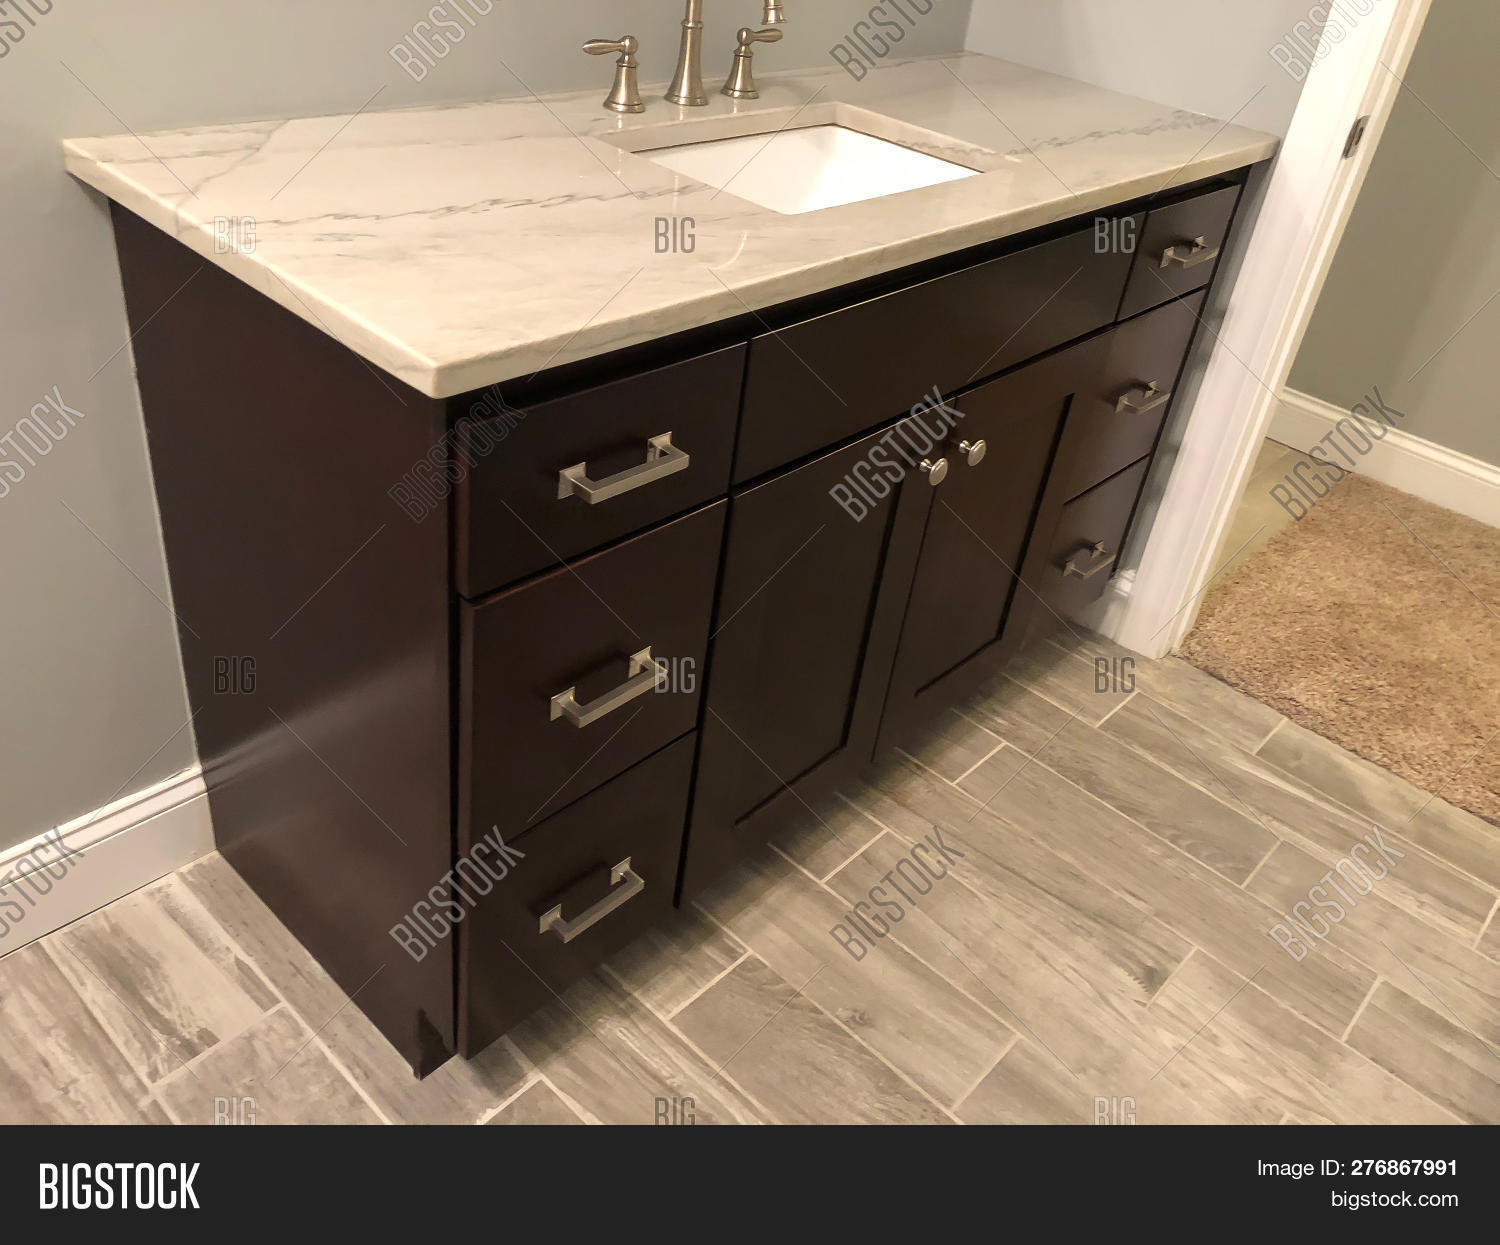 Bathroom Cabinet Image Photo Free Trial Bigstock